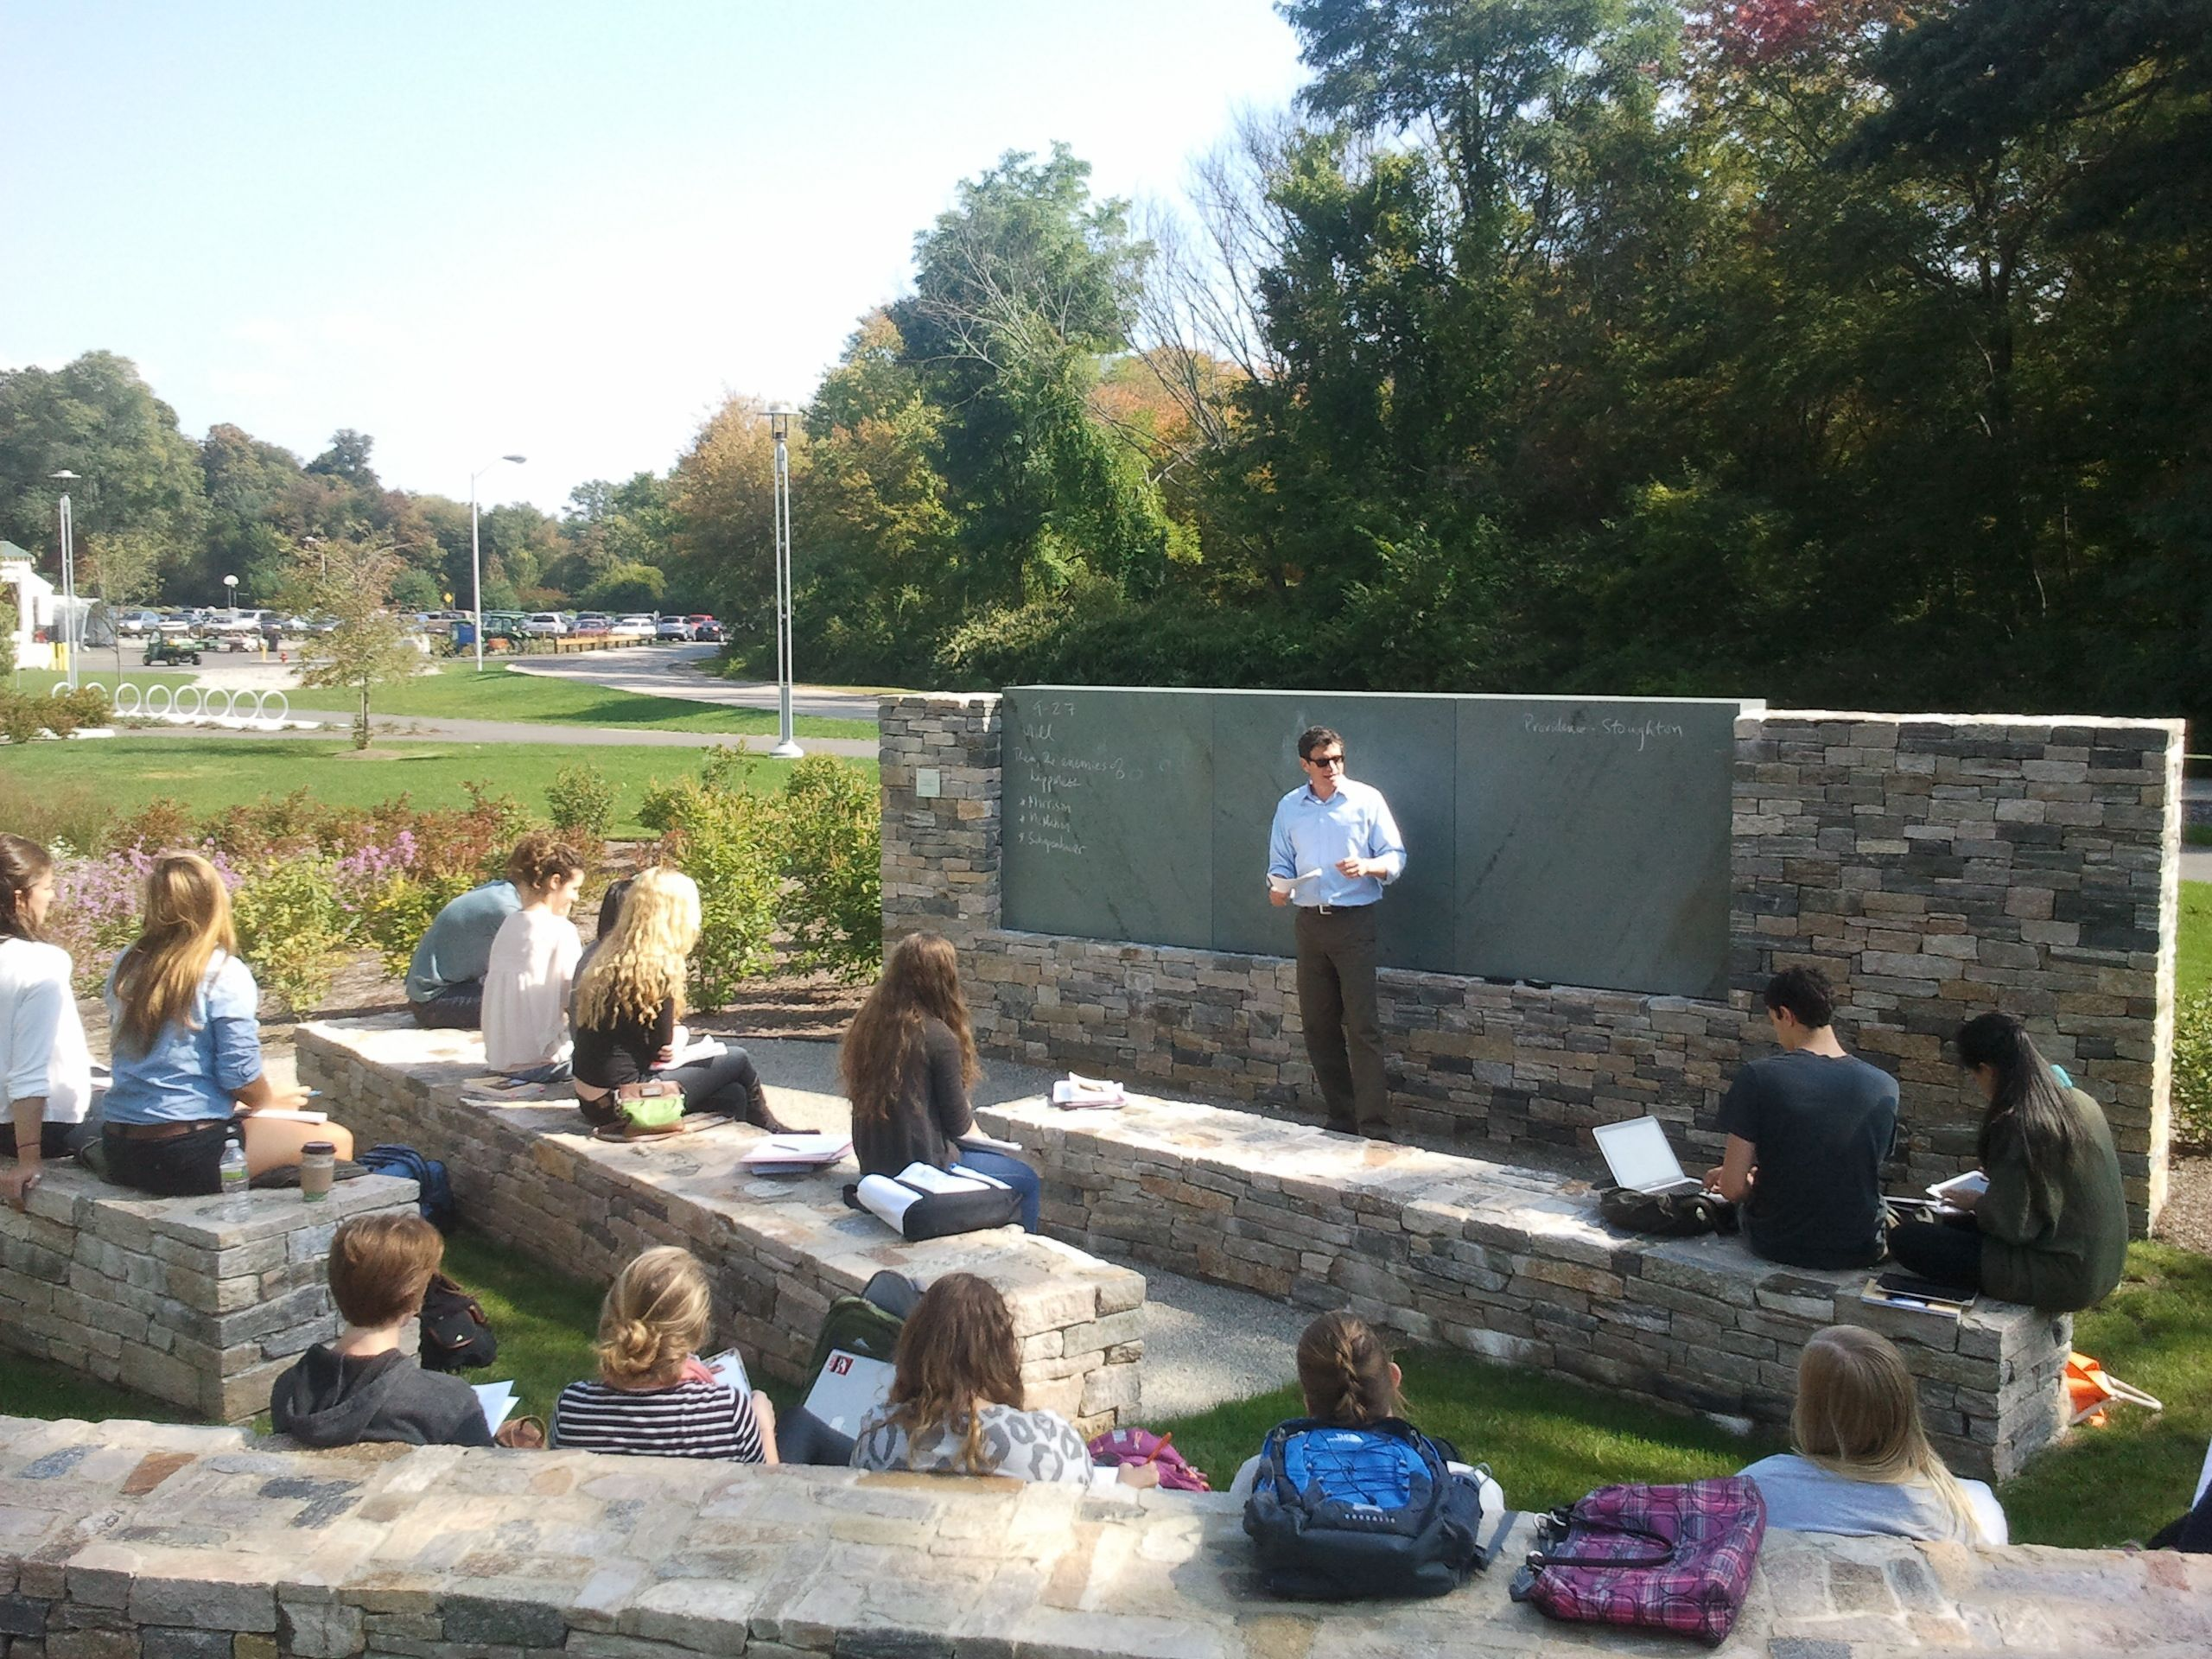 Outdoor Classroom Ideas Elementary School ~ Outdoor classroom design ideas google search in the